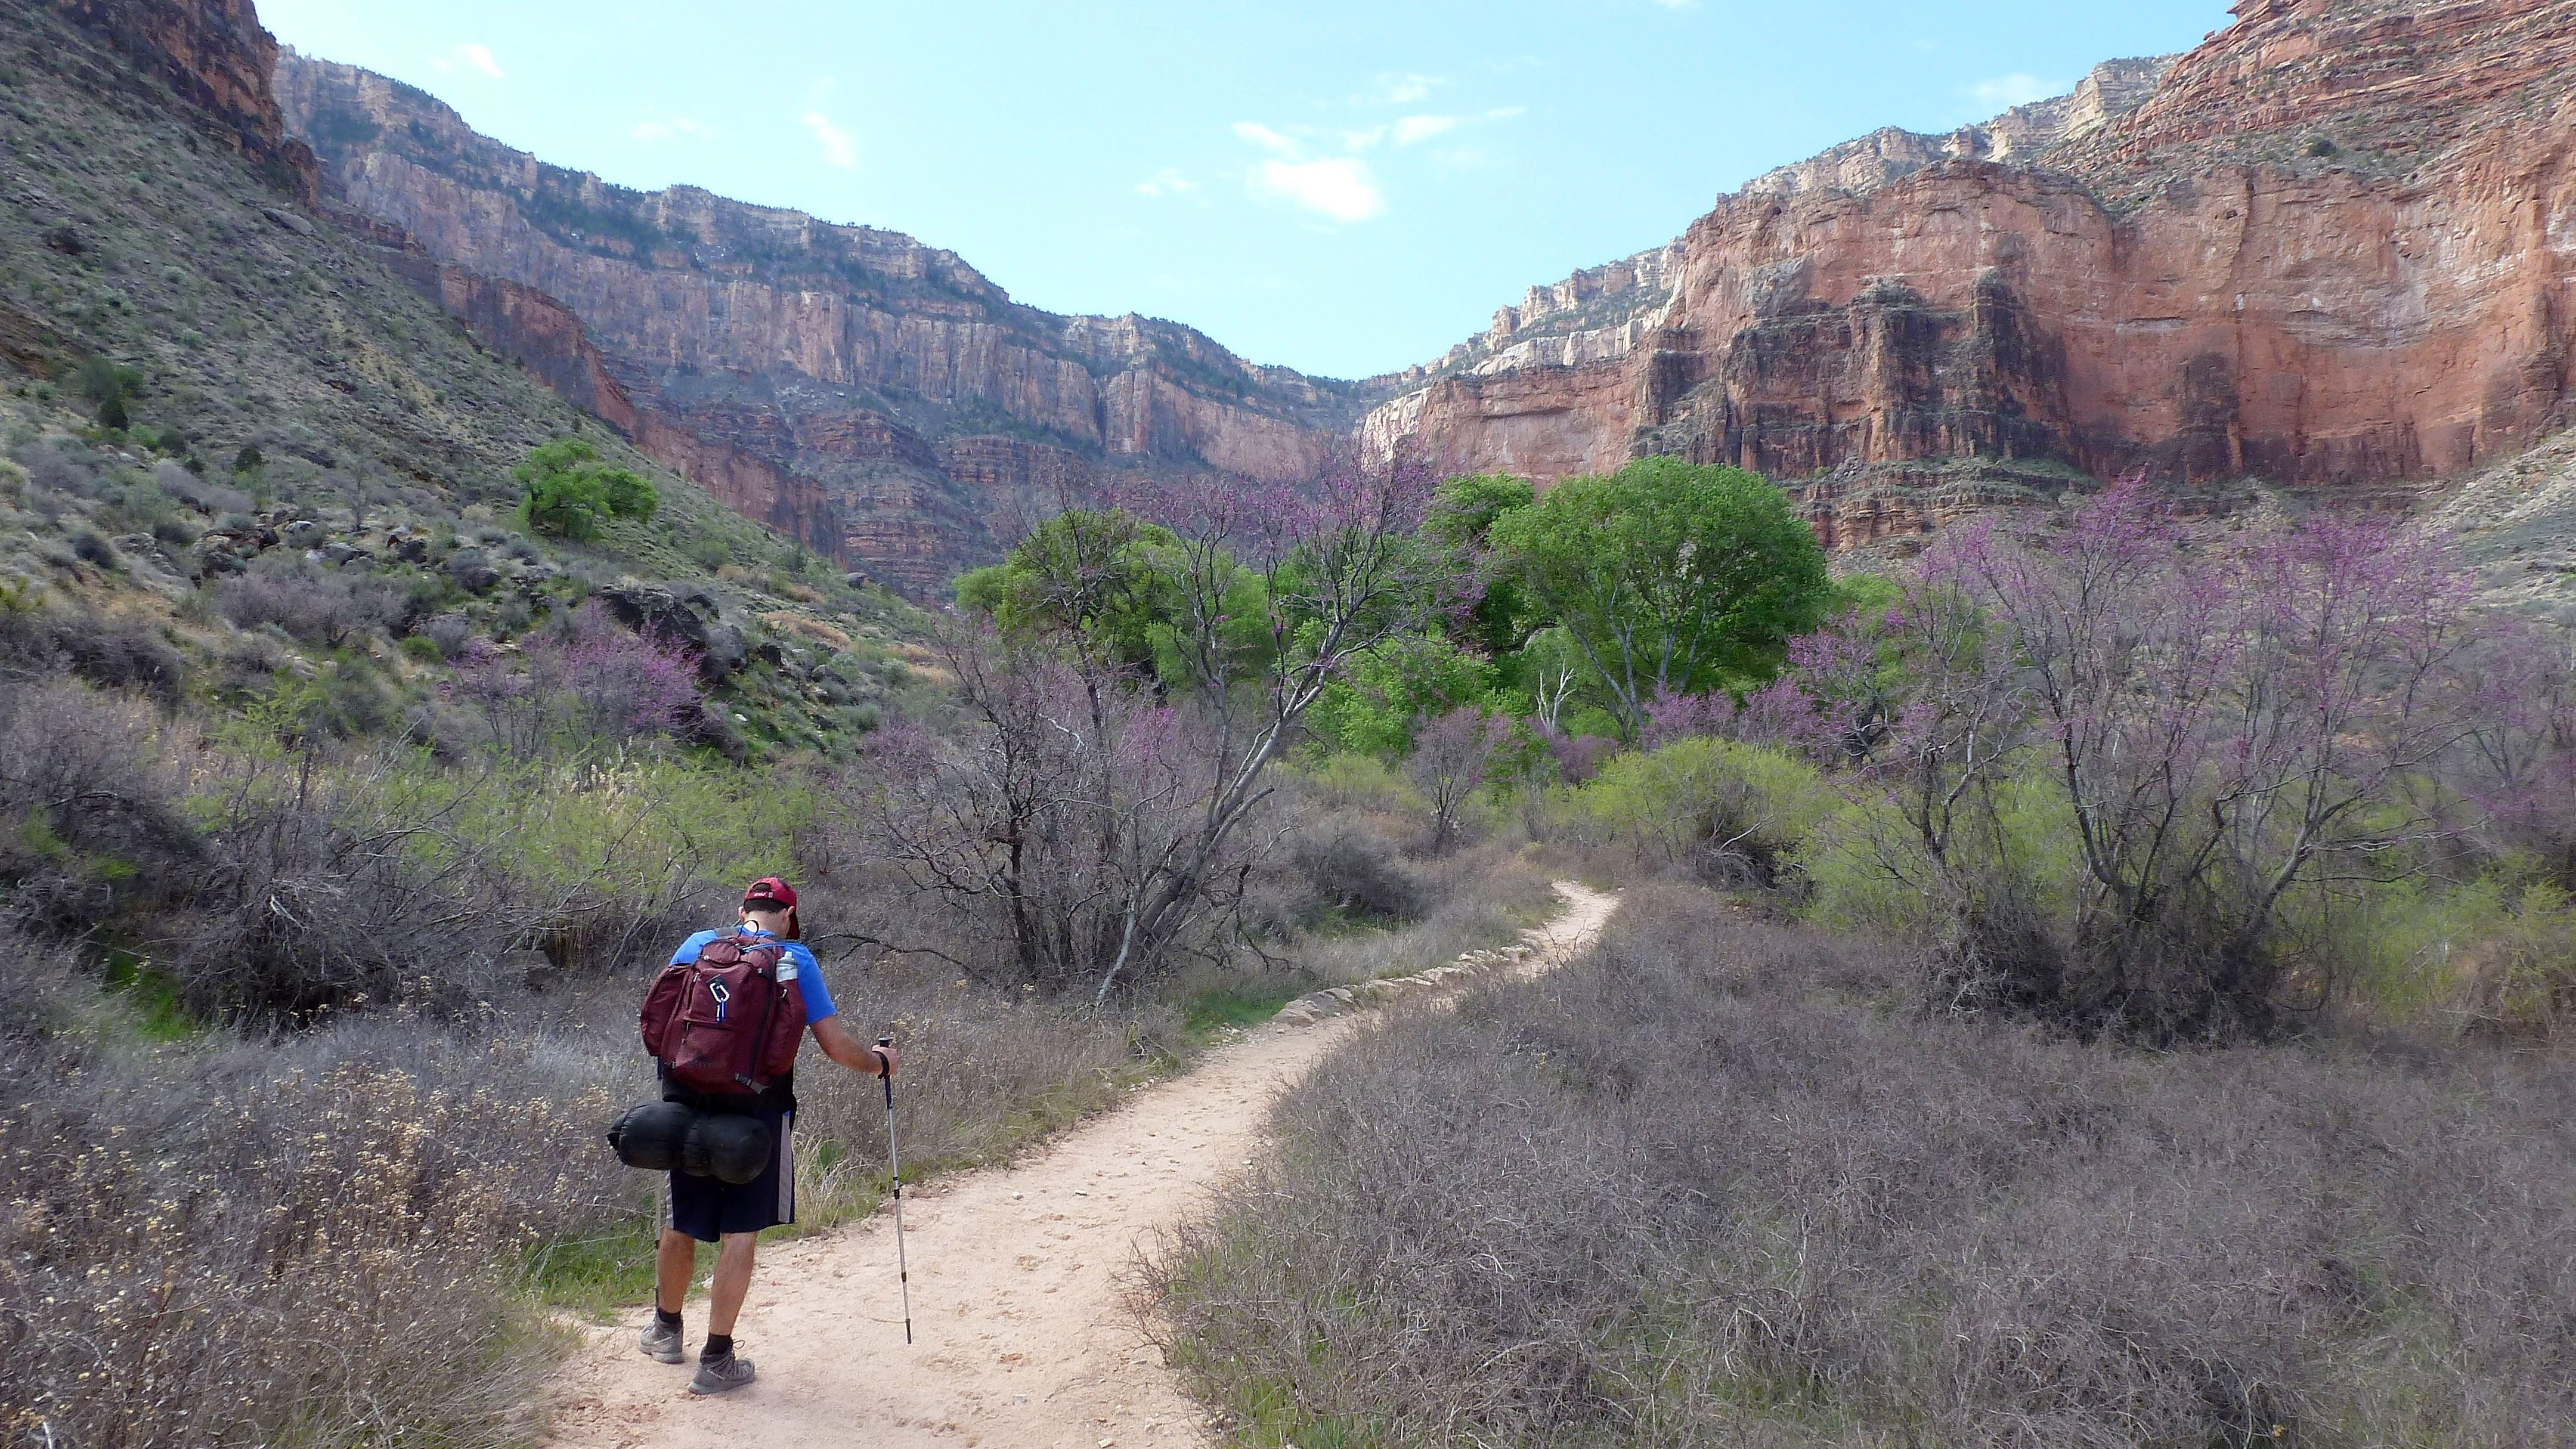 A hiker makes his way back up the Grand Canyon along the Bright Angel Trail on March 17, 2015. Many hikers choose to hike back up the canyon along the Bright Angel trail in Grand Canyon National Park because it has water stops along the way.